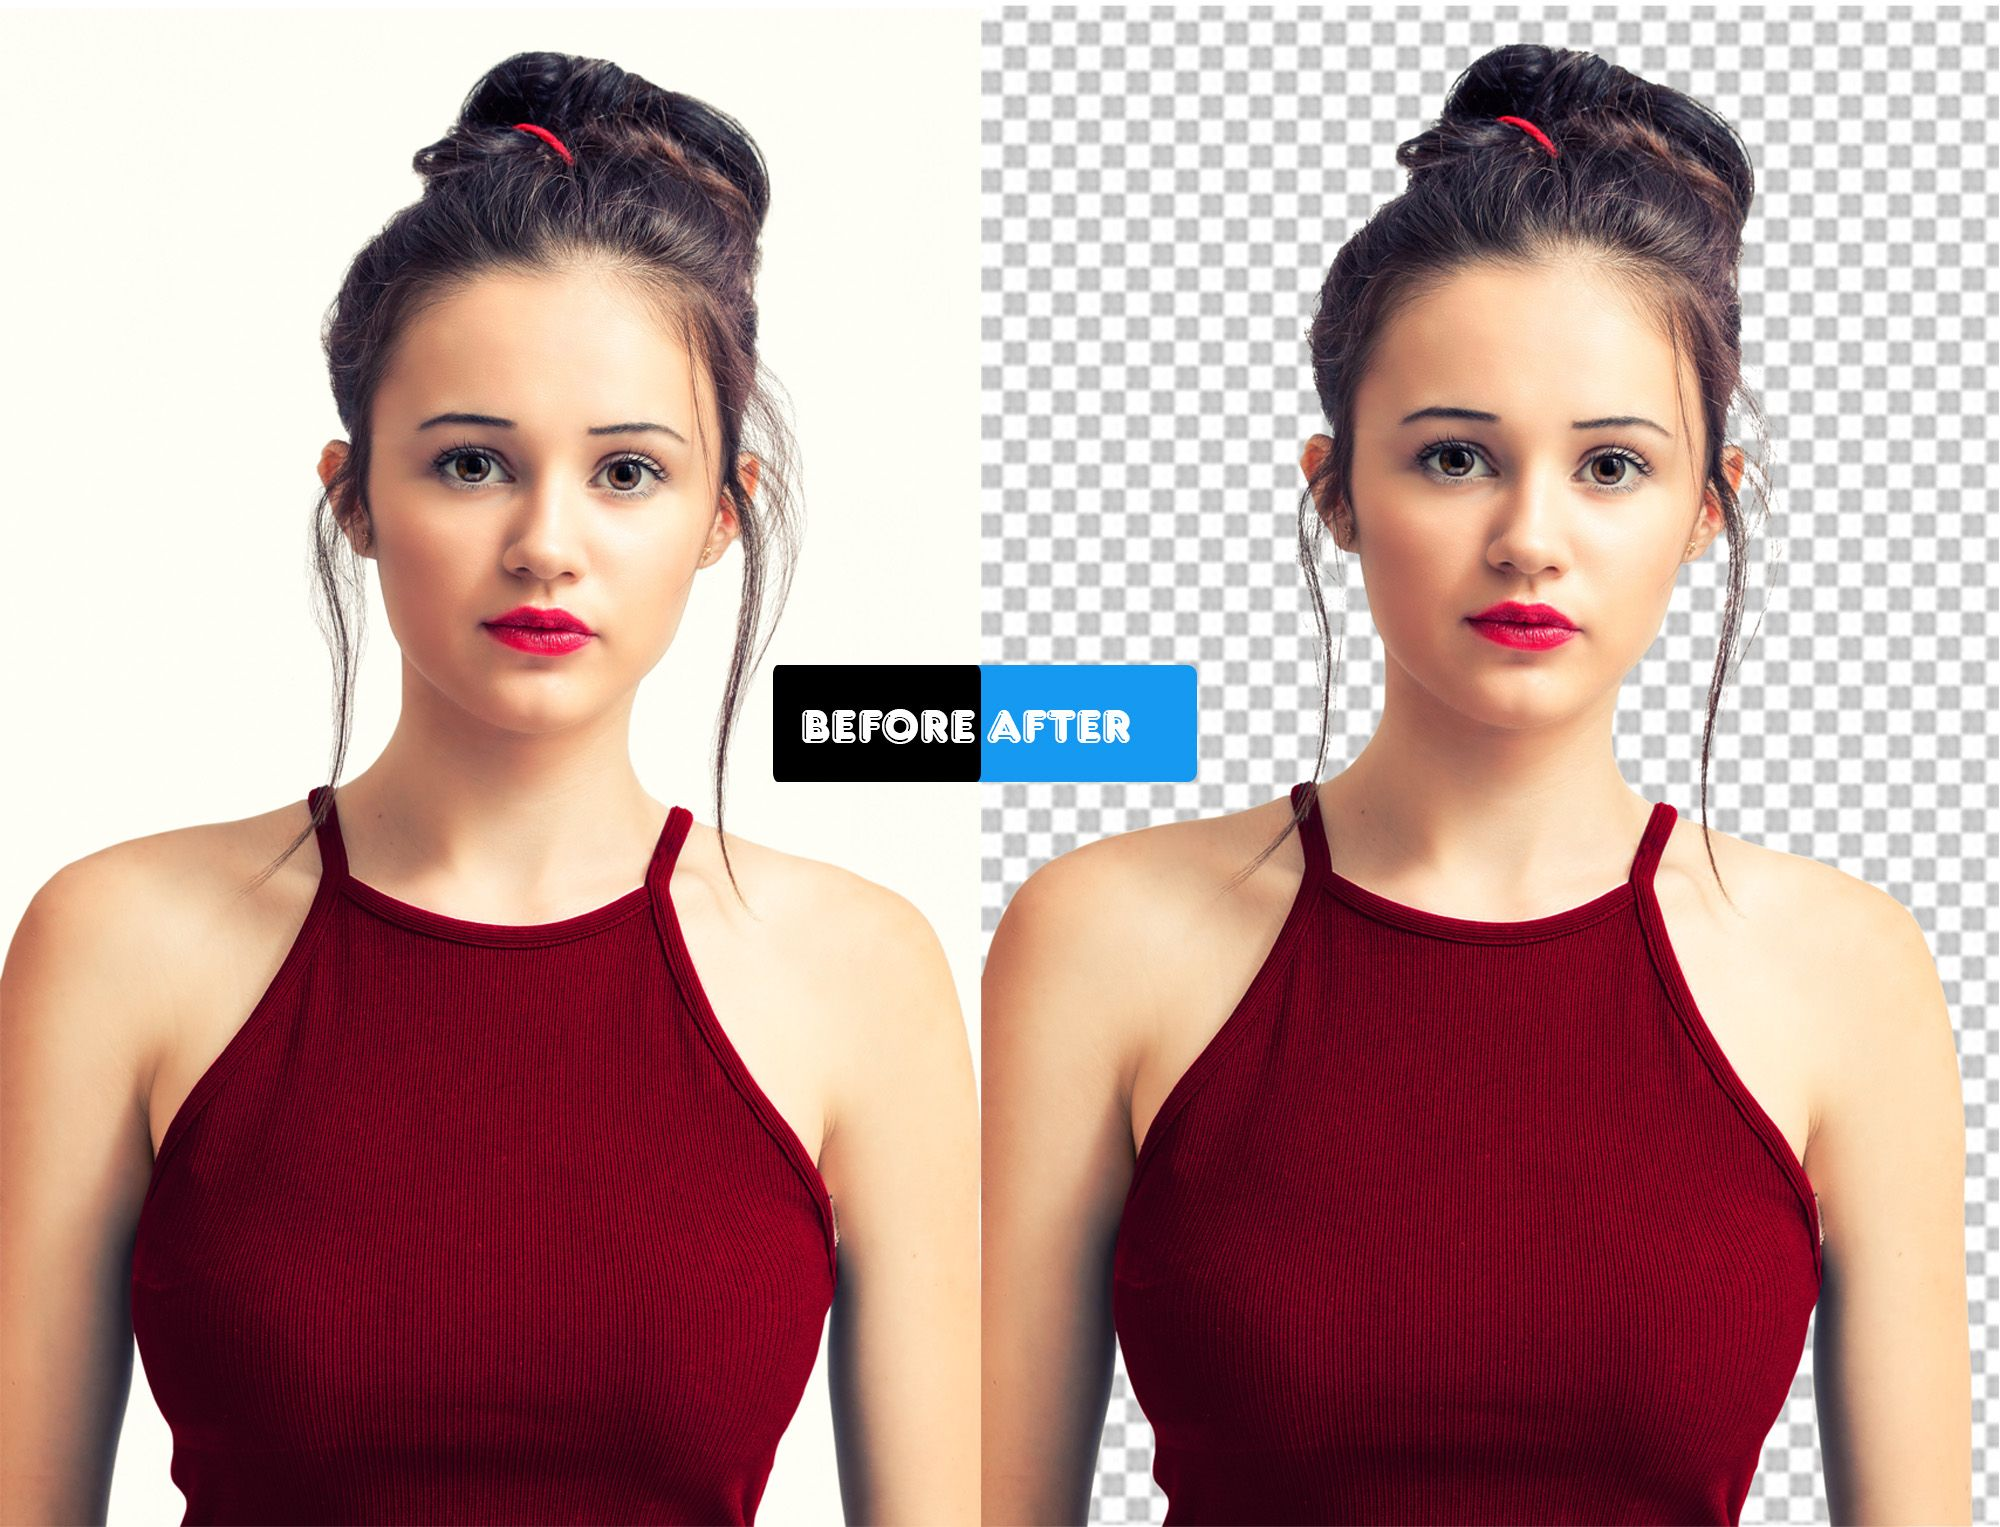 Background Removal Background Remover Photoshop Editing Photo Retouching